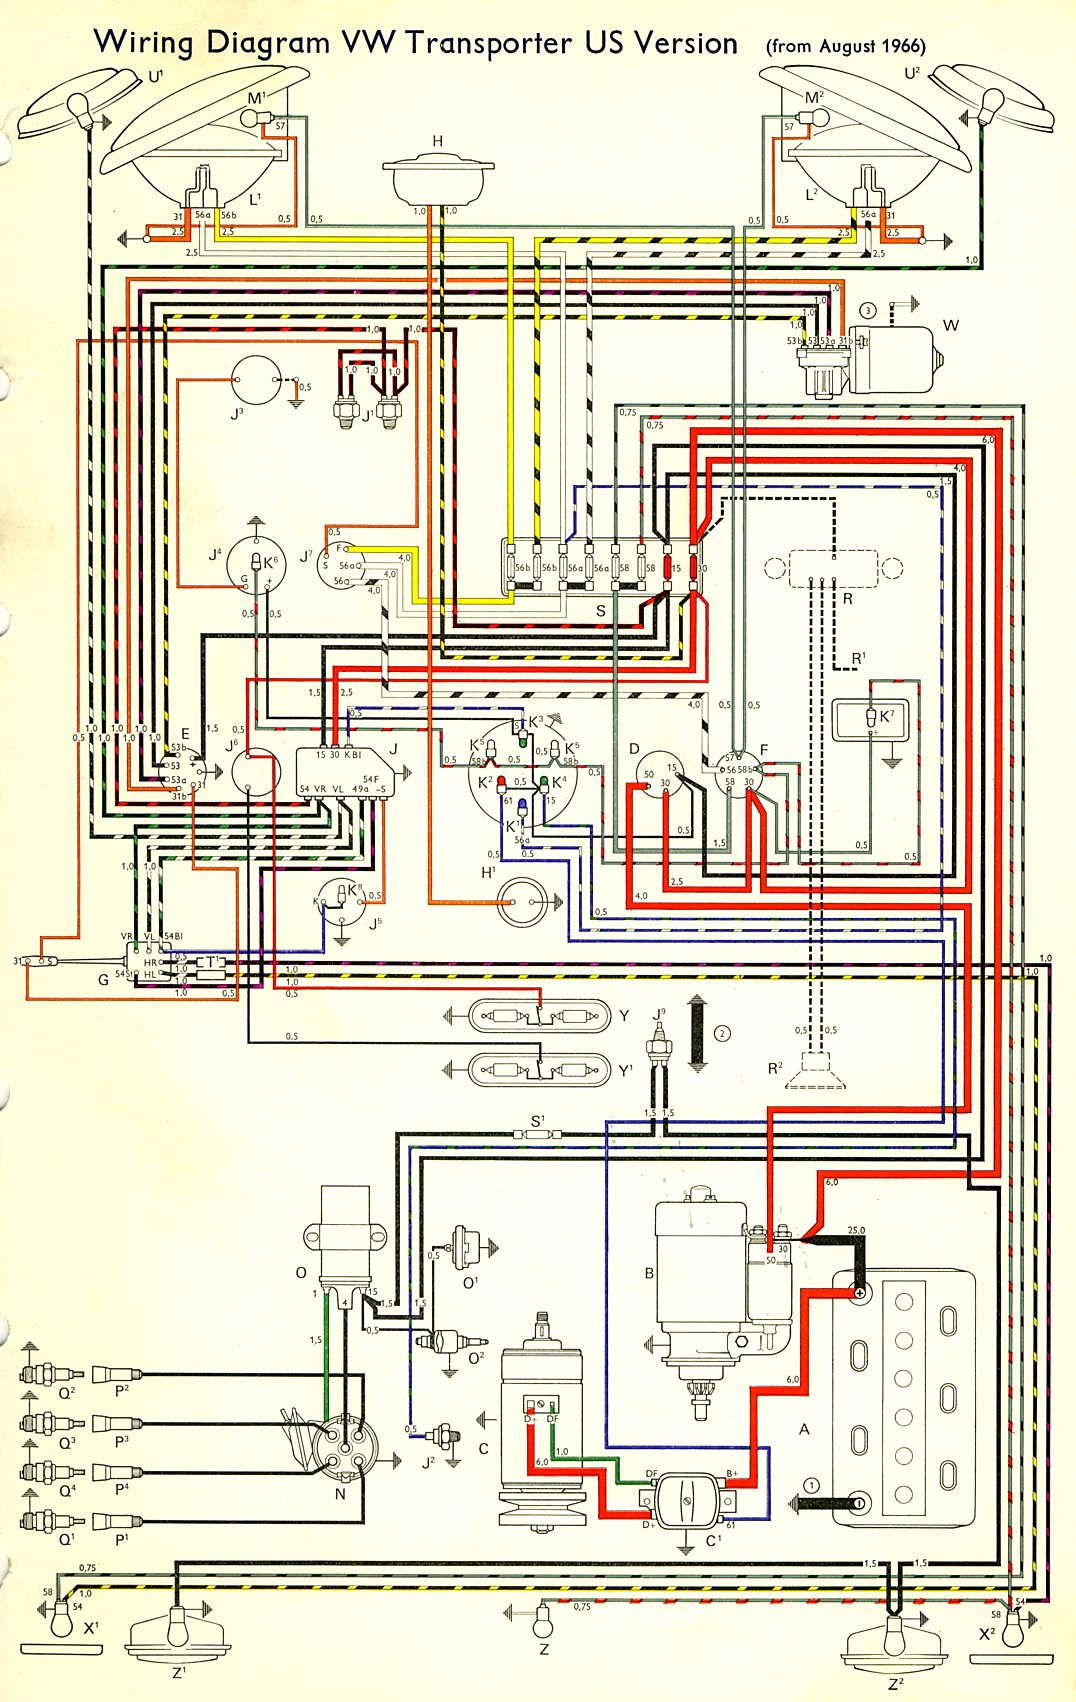 bus_67_USA 67 vw bus wiring harness 71 vw wiring harness \u2022 wiring diagrams vw type 3 wiring harness at fashall.co